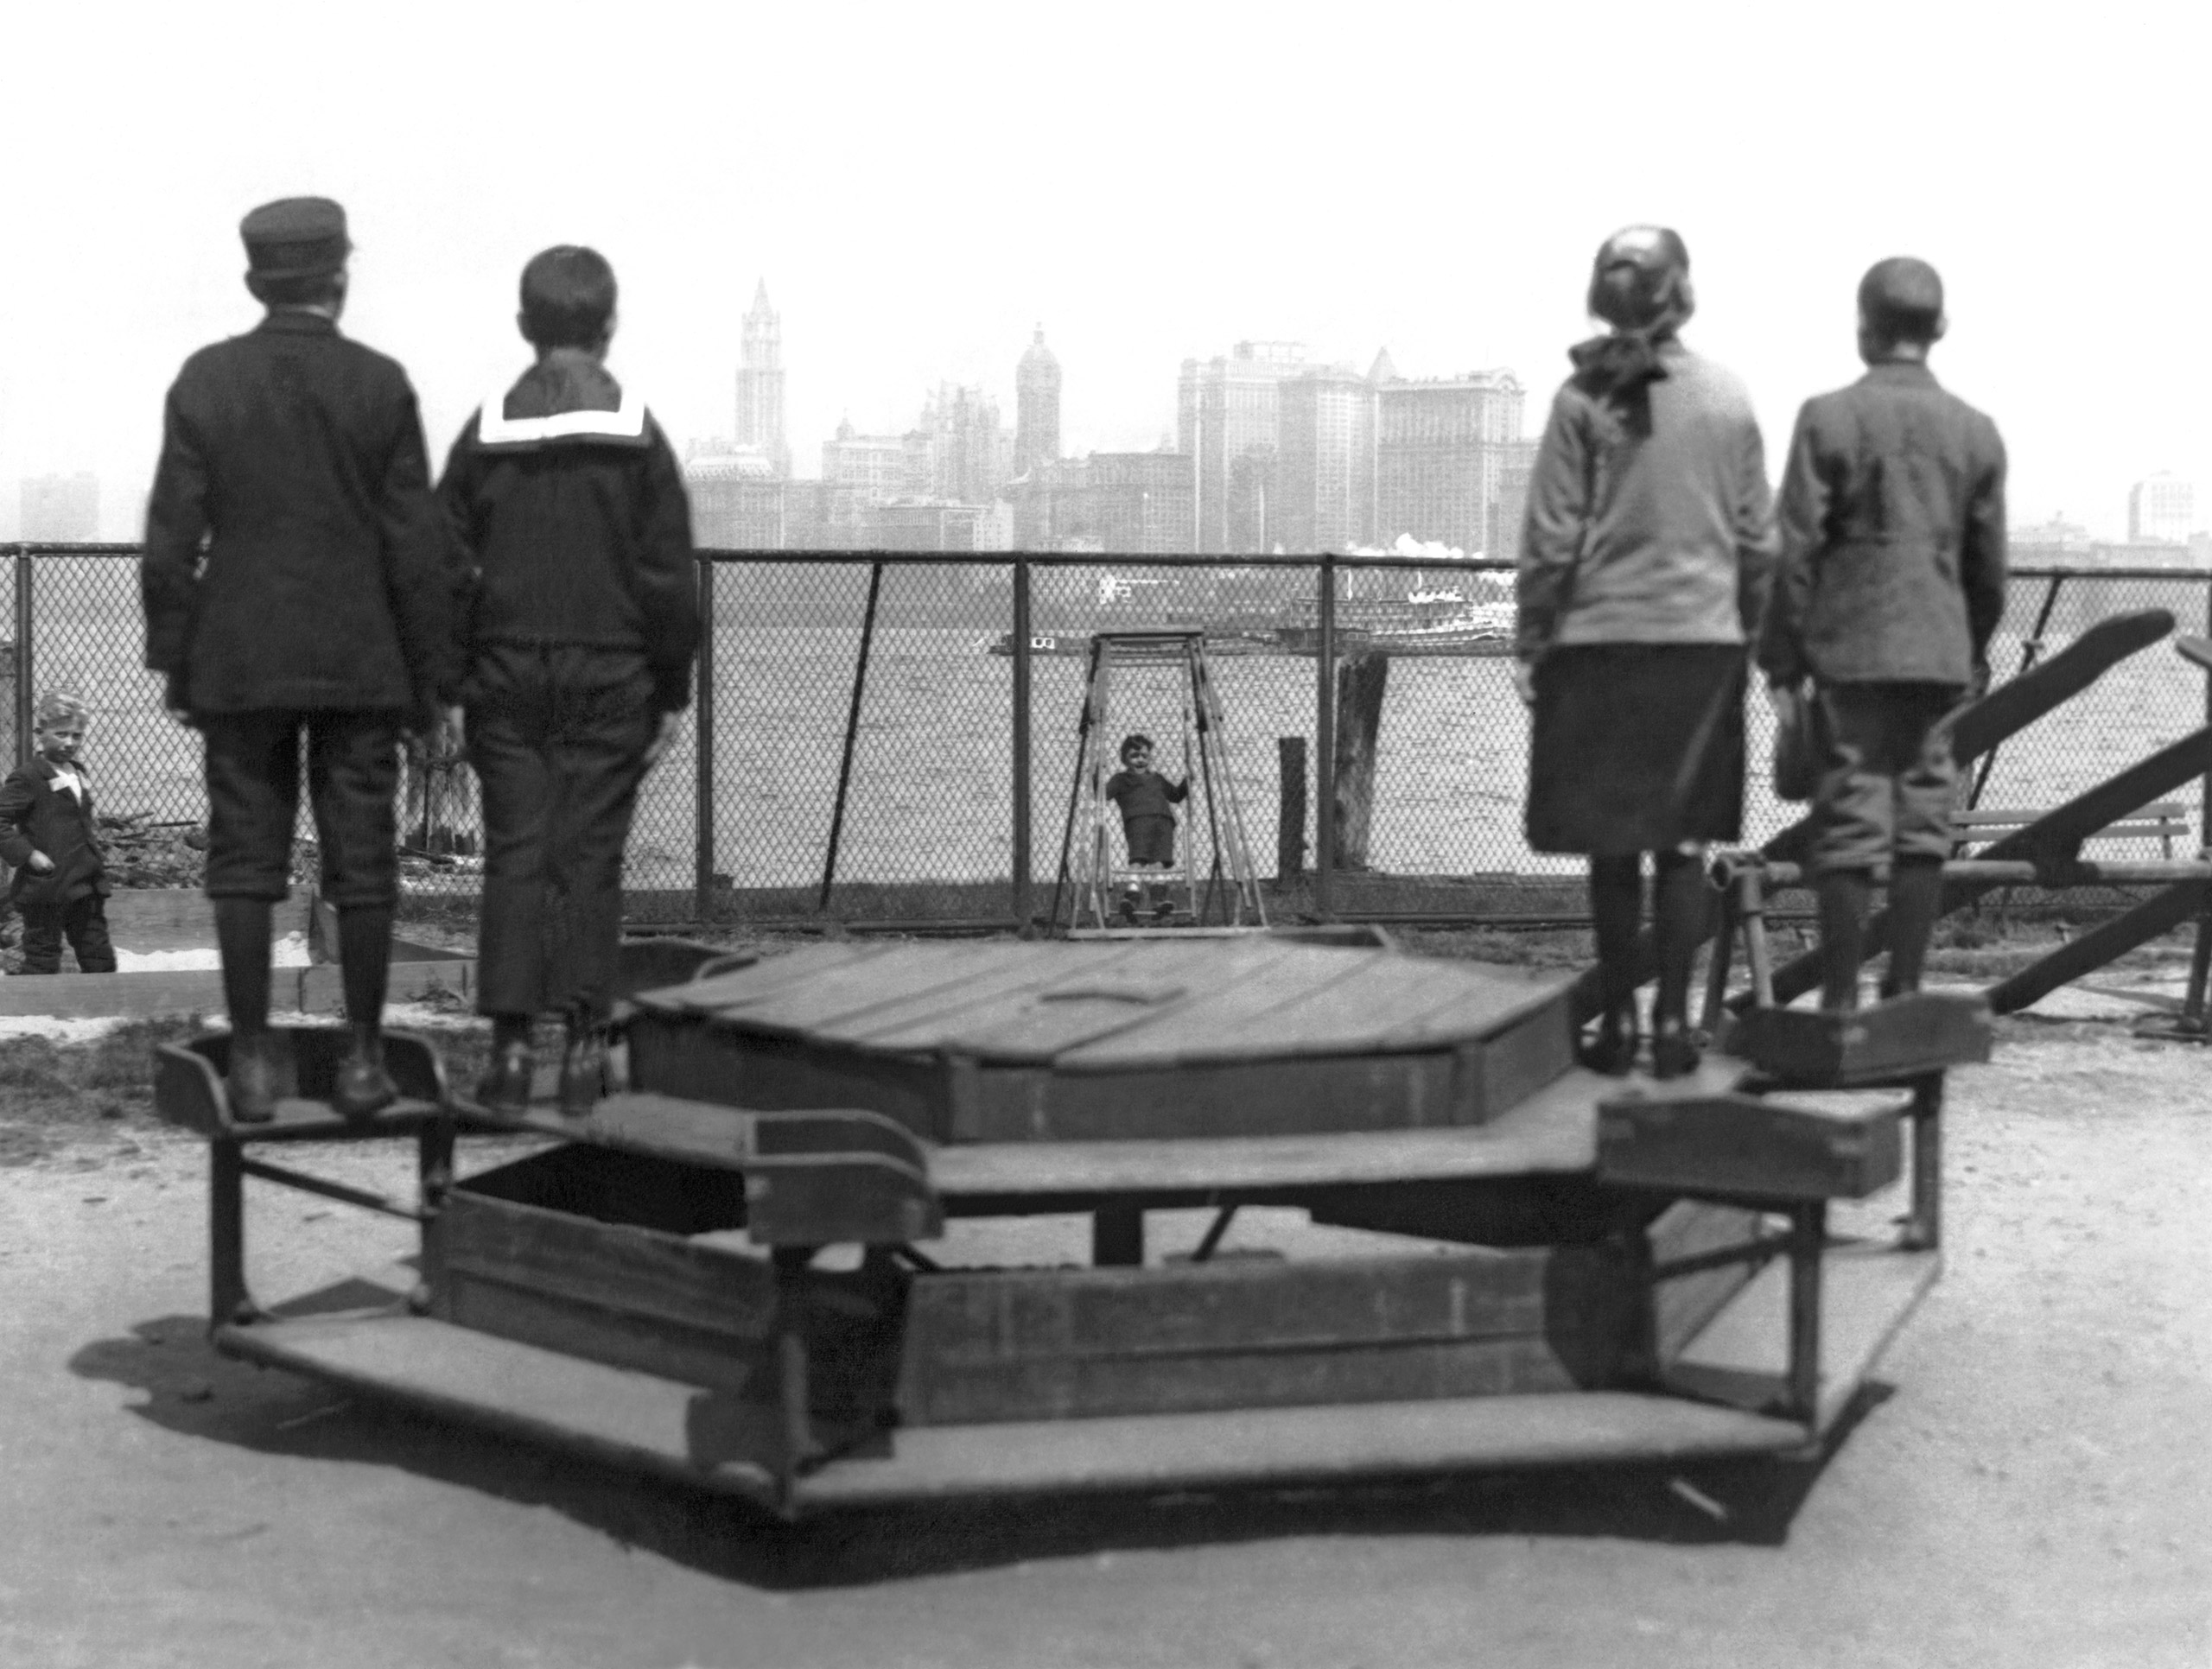 Immigrants representing four countries, Poland, Norway, Germany and Russia, looking from Ellis Island towards New York City, circa 1913.